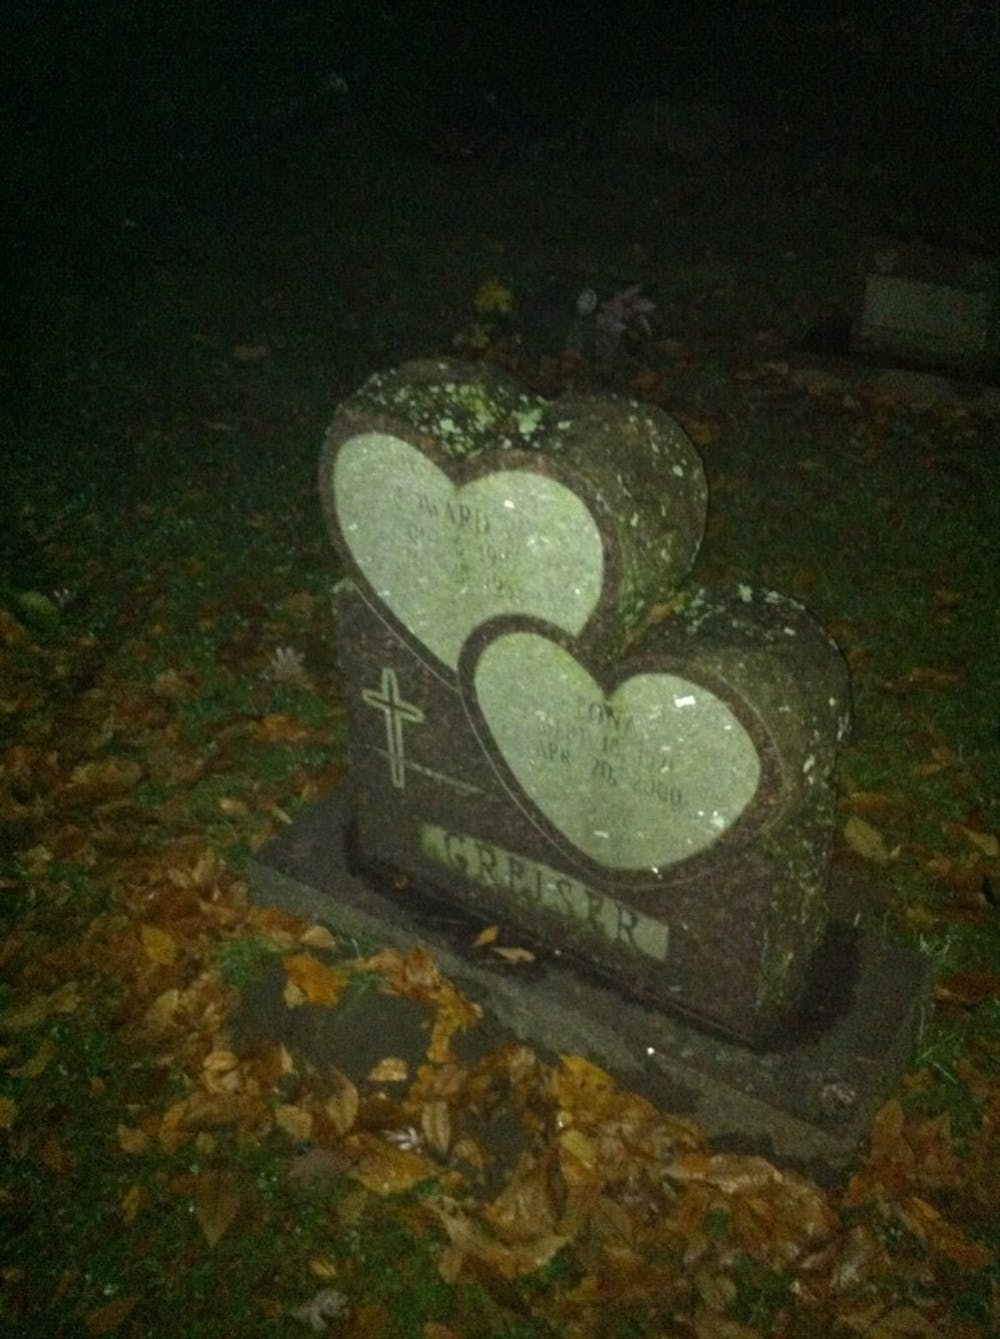 Highland Cemetery offers lantern-lit tours in honor of Halloween